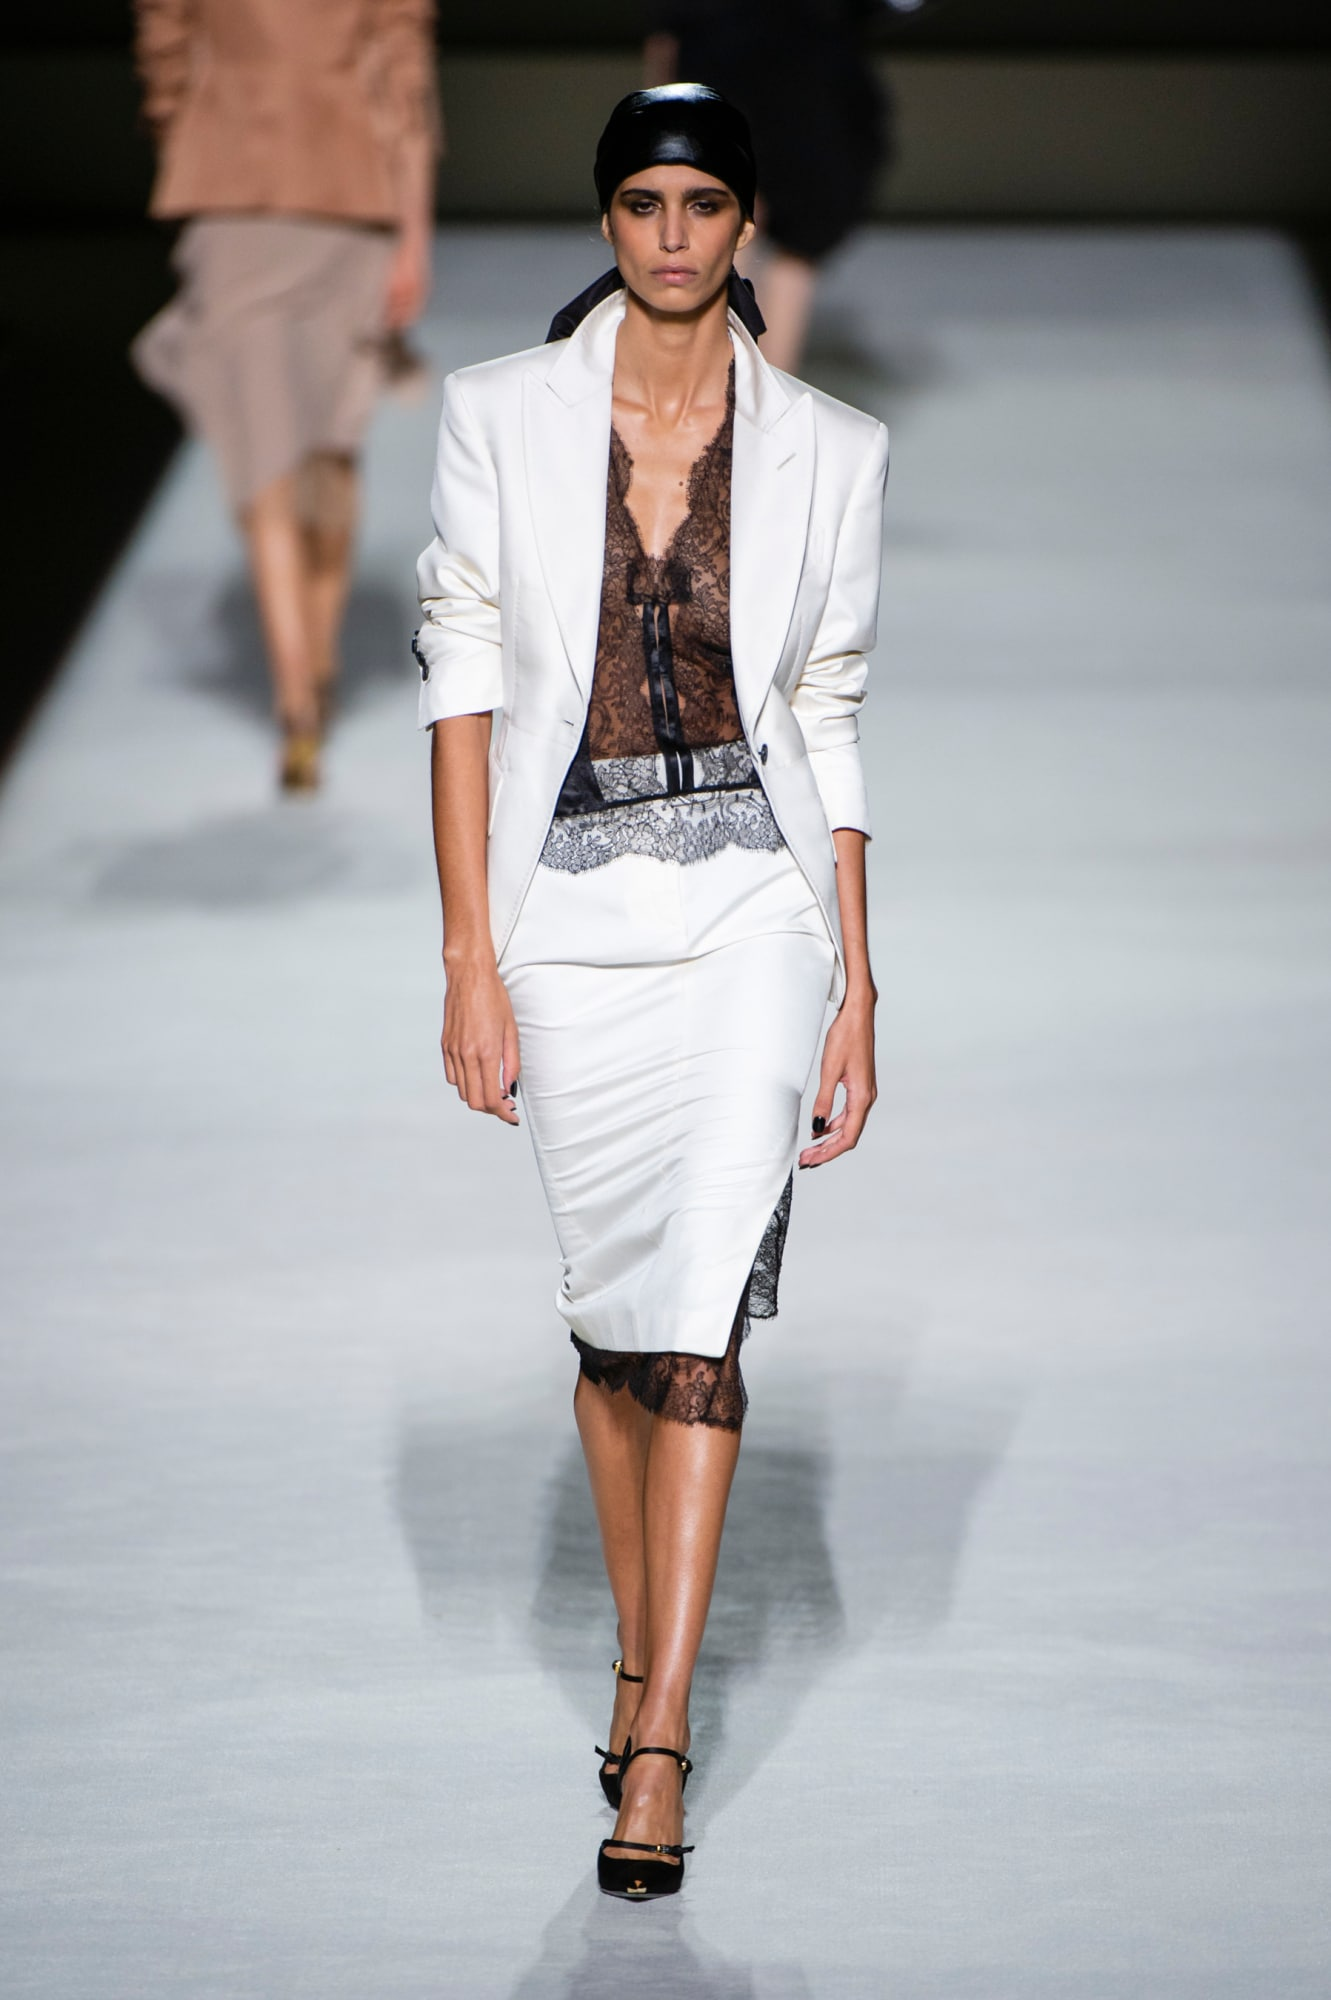 Tom Ford spring 2019 collection, women's white suit with black lace